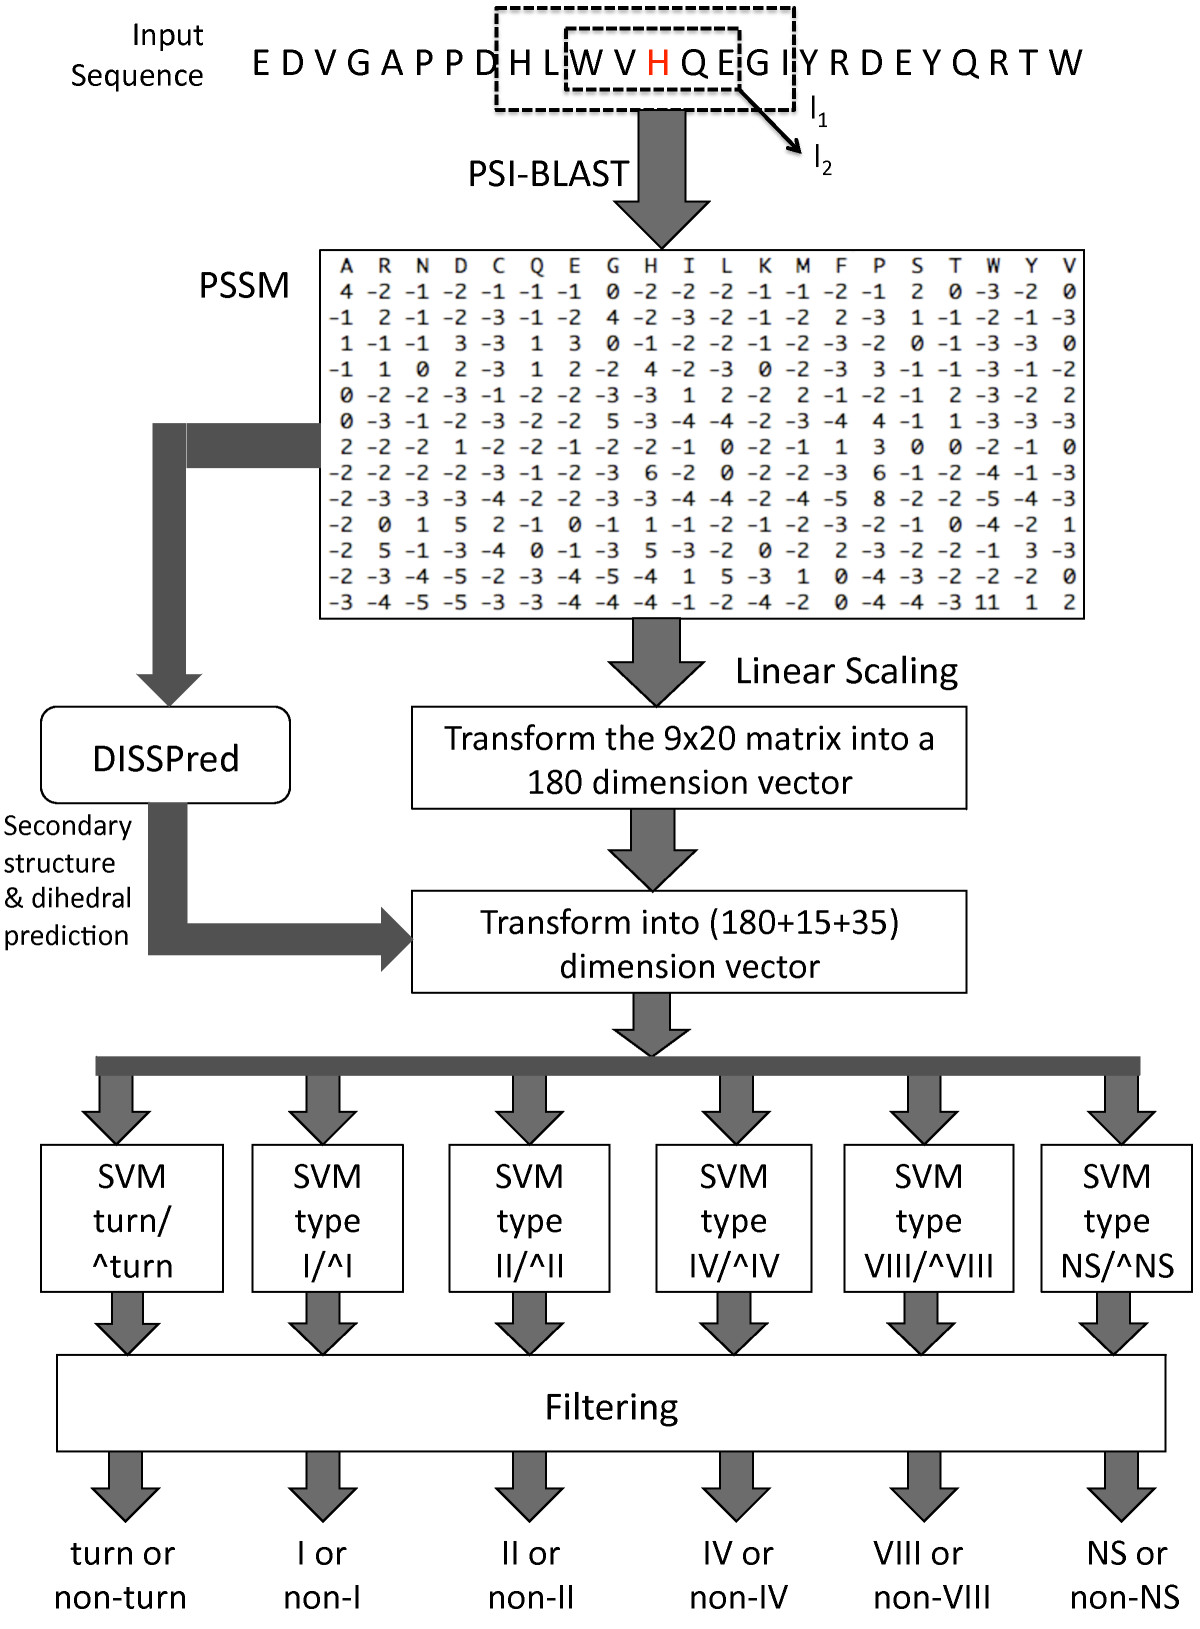 http://static-content.springer.com/image/art%3A10.1186%2F1471-2105-11-407/MediaObjects/12859_2010_Article_3864_Fig1_HTML.jpg